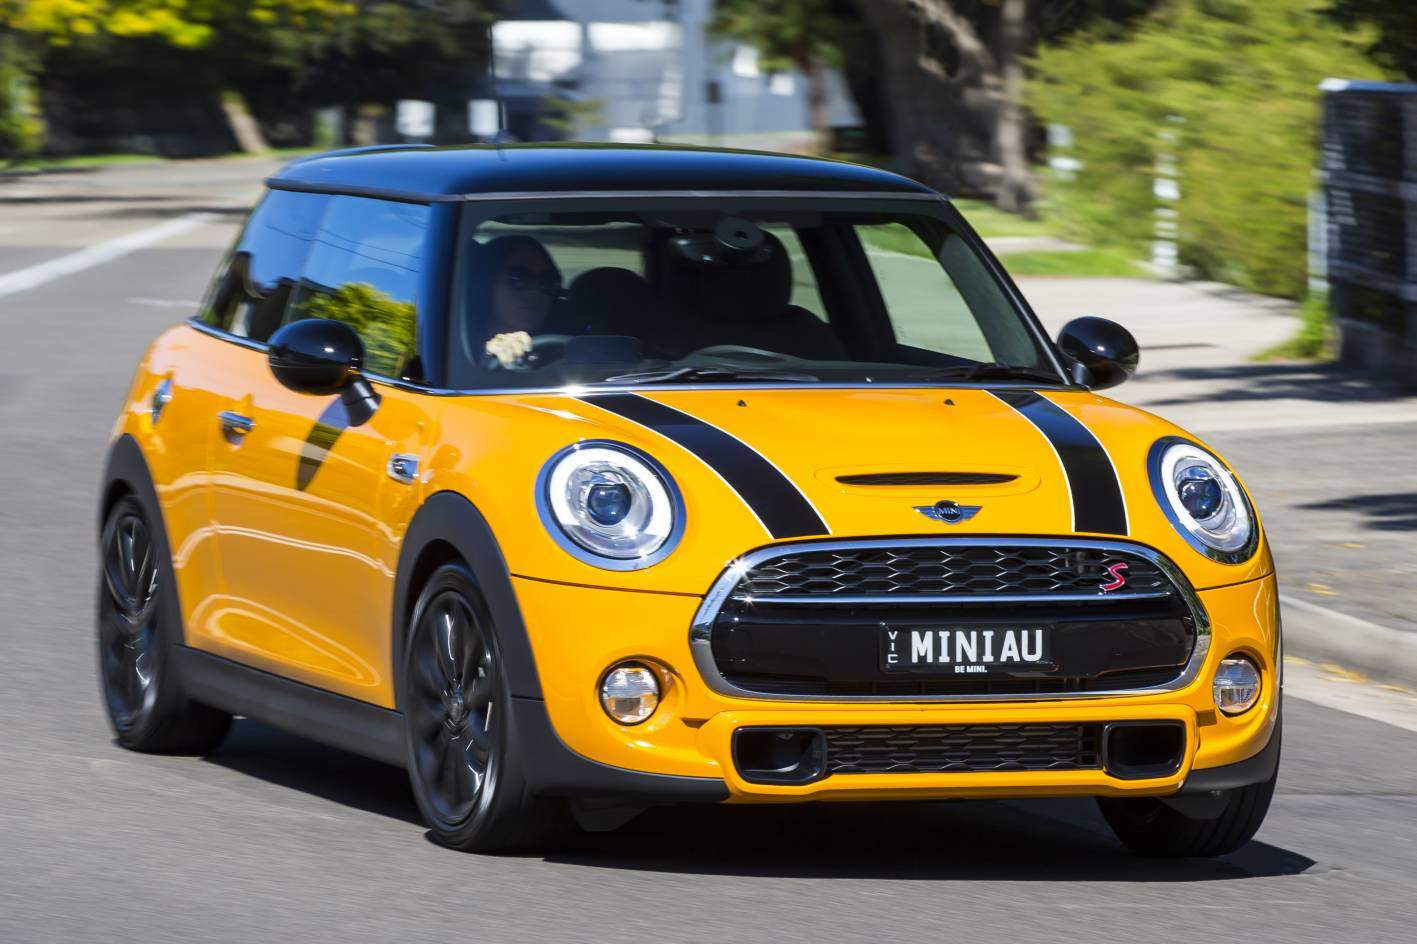 Accolades for MINI in German car awards